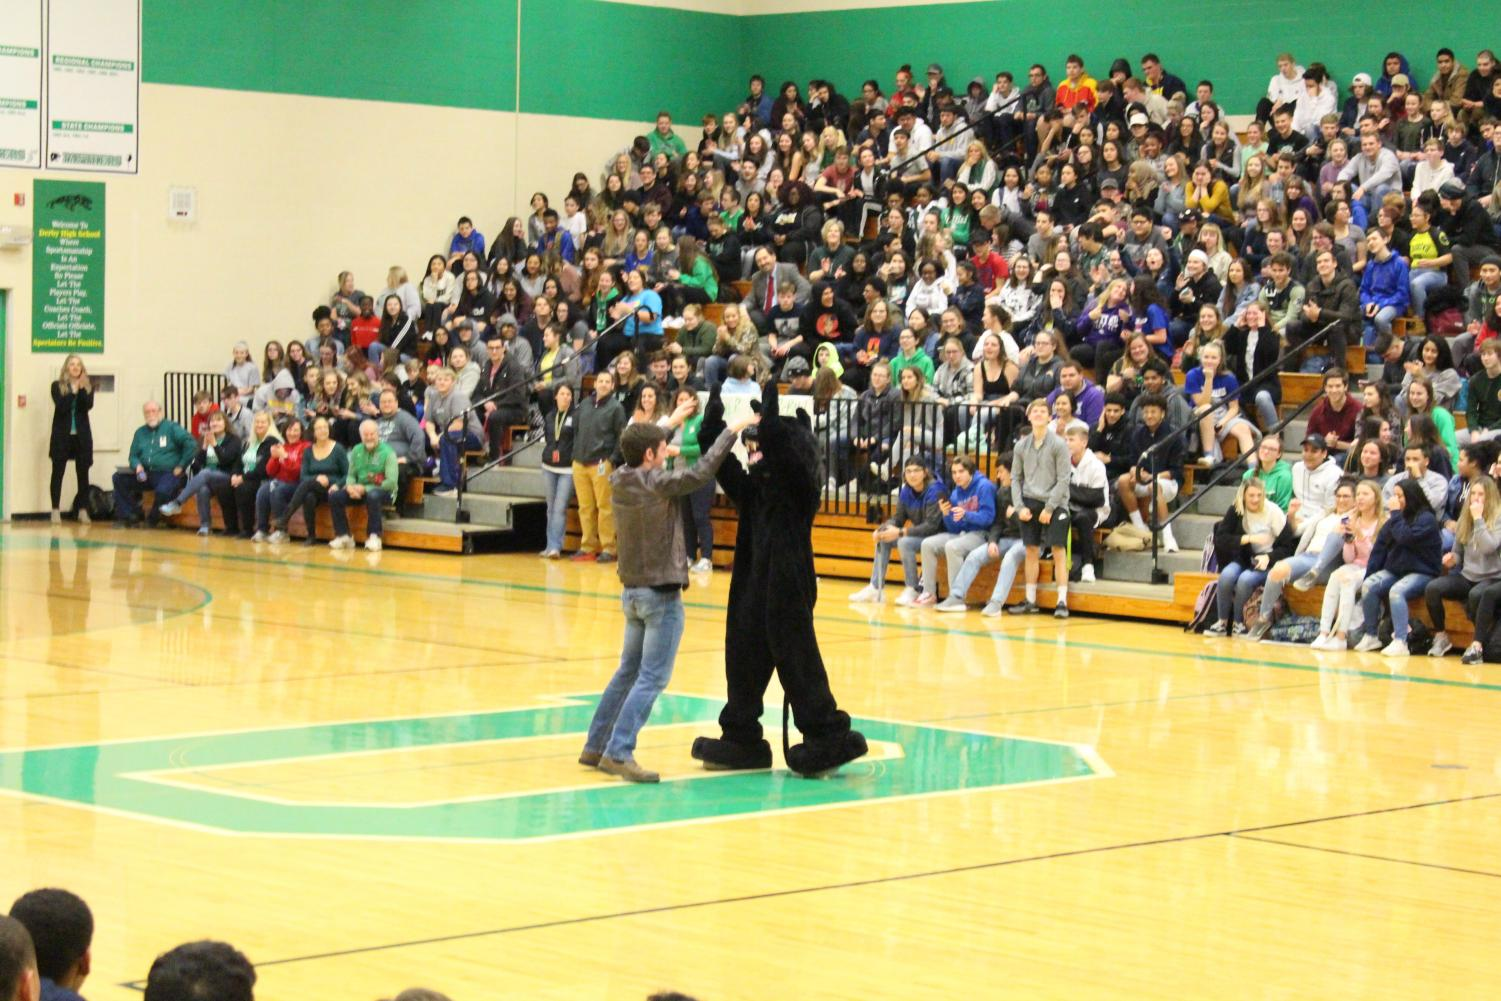 Senior+Cooper+Ross+and+the+Panther+mascot+high+five+in+the+middle+of+the+court